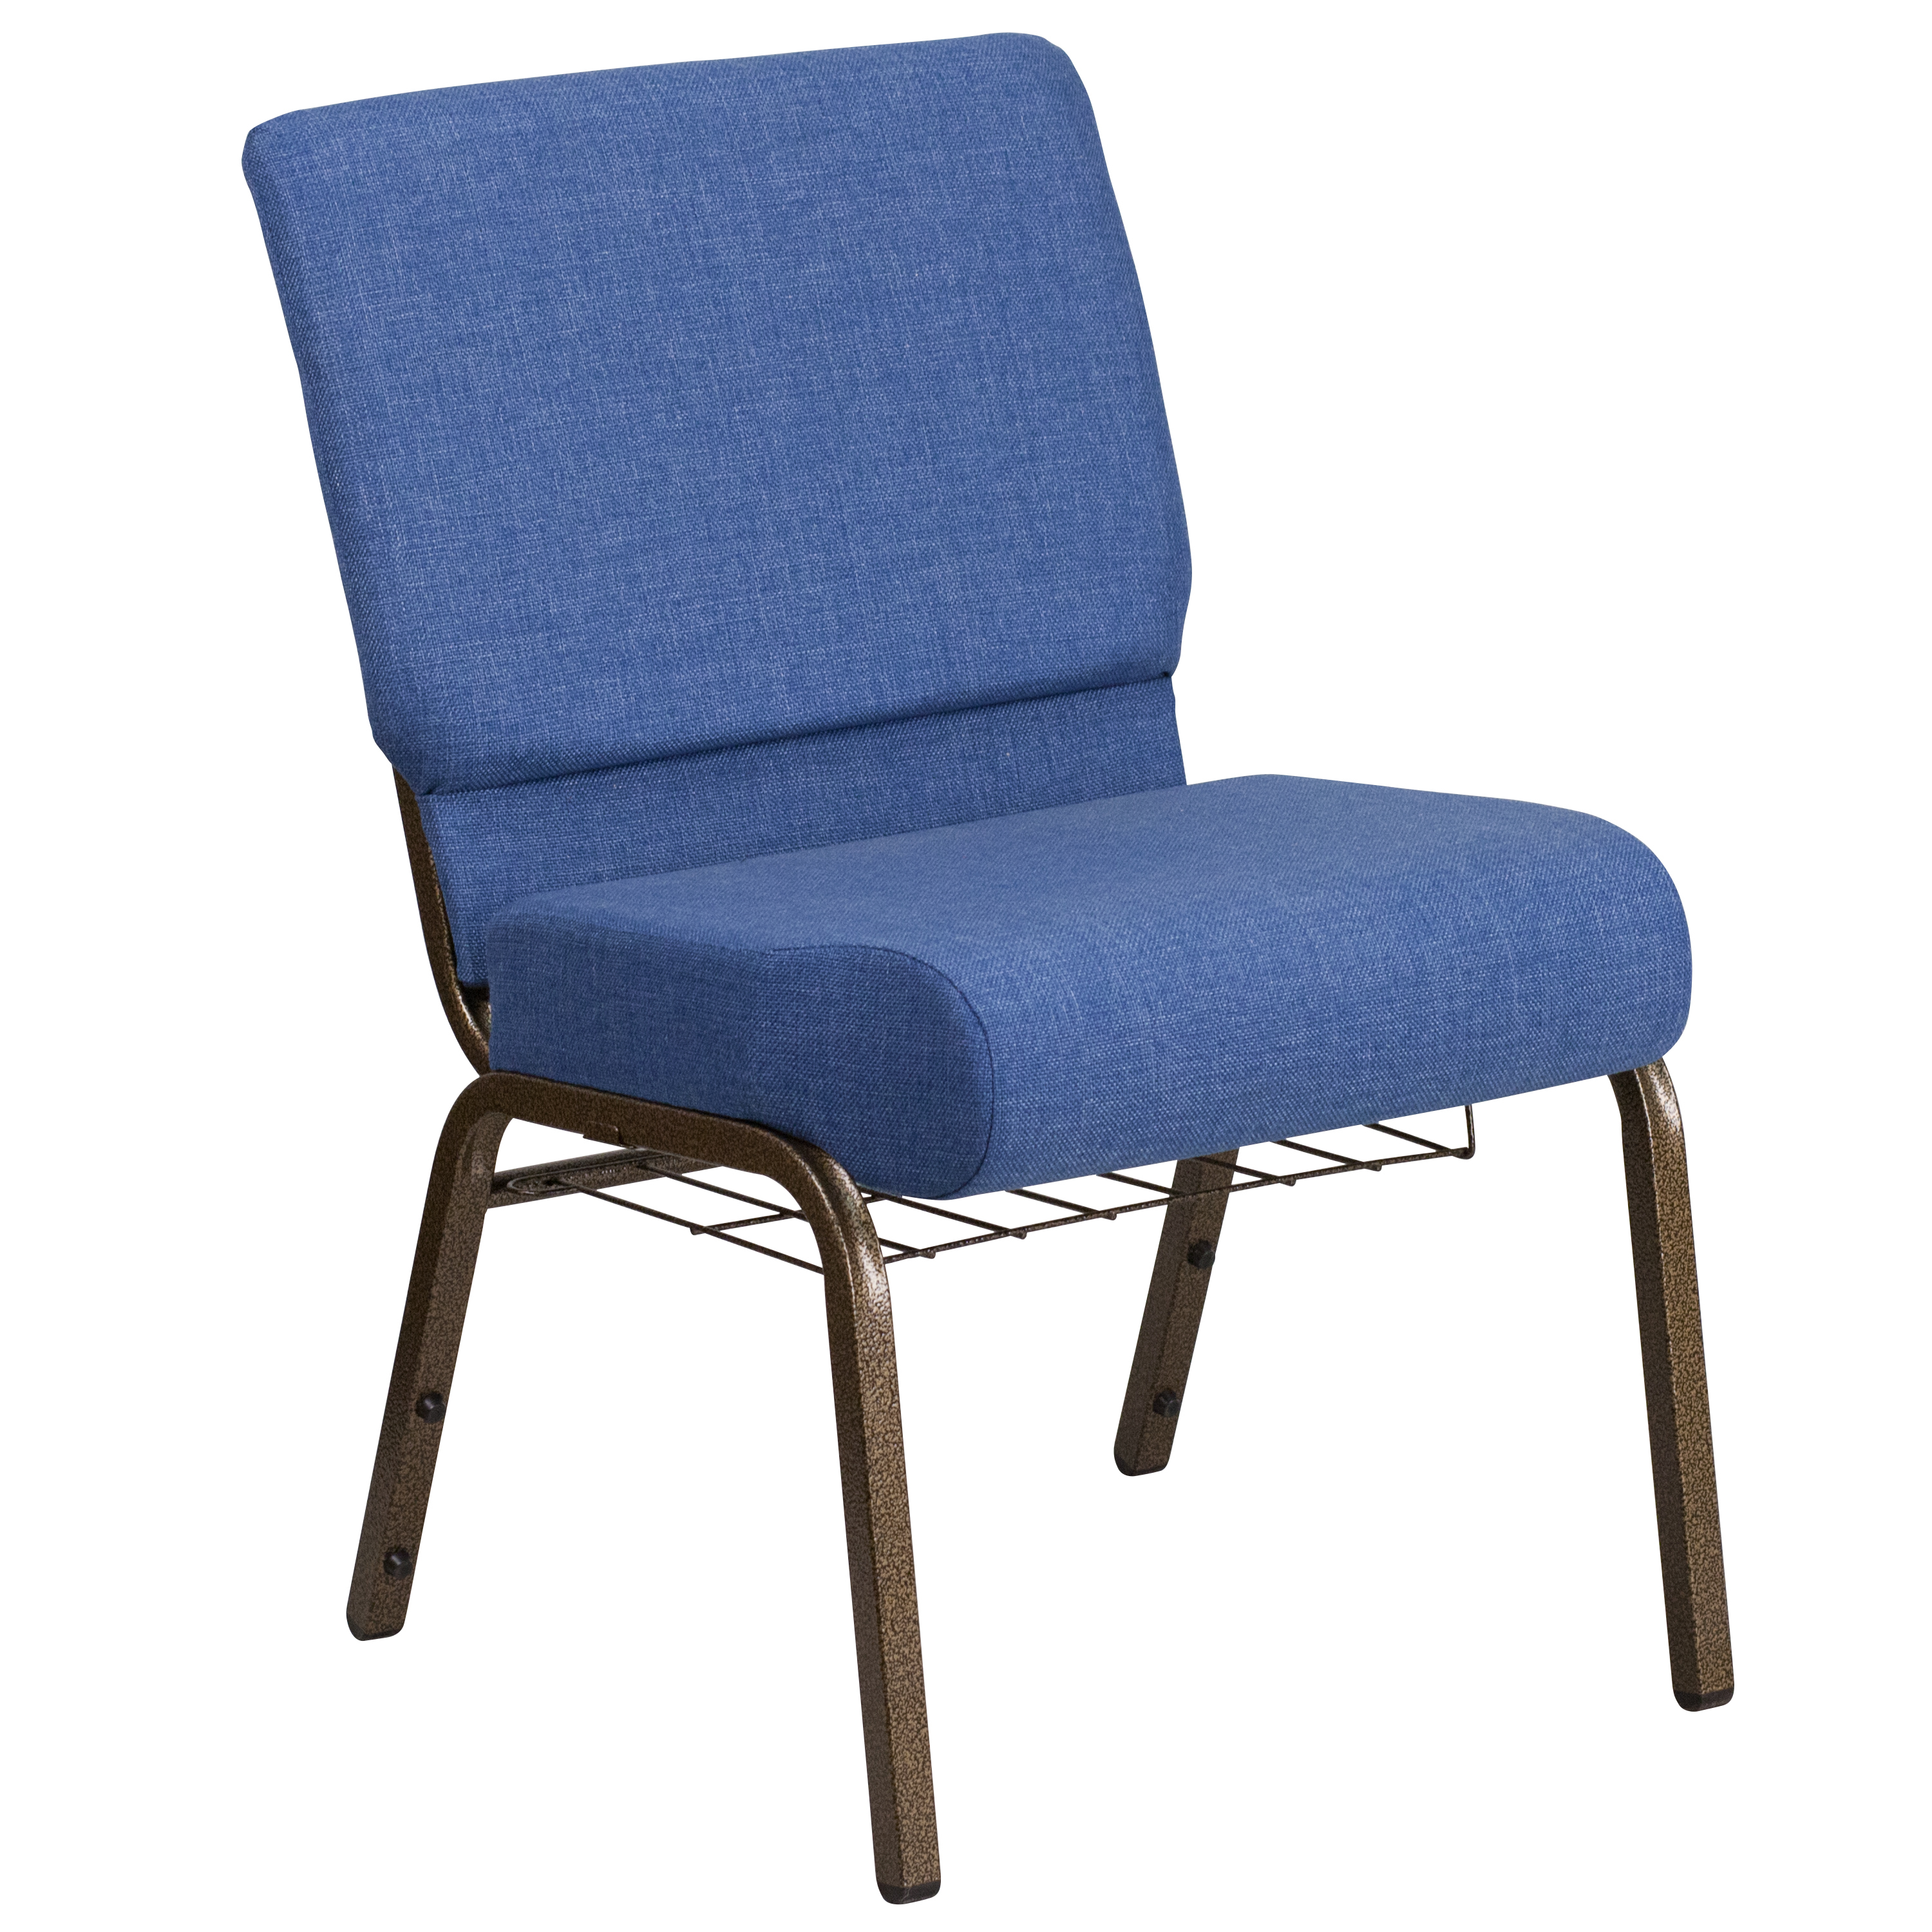 Flash Furniture HERCULES Series 21'' Wide Blue Fabric Church Chair with 4'' Thick Seat, Cup Book Rack - Gold Vein Frame(base UPC0088914207576)